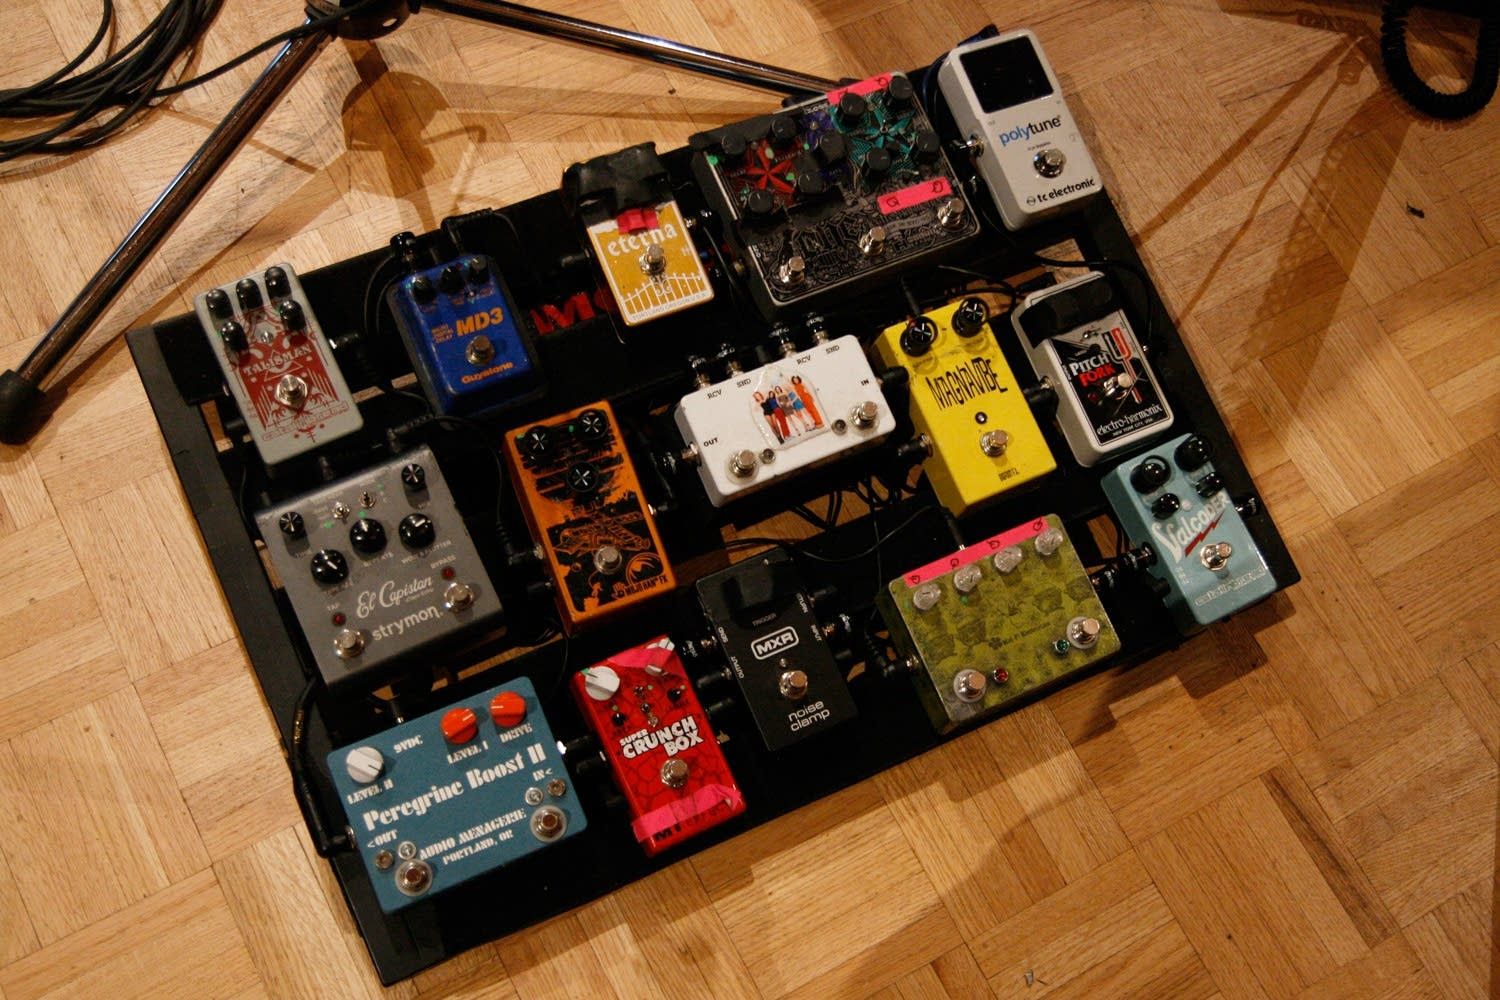 Bobb Bruno's effects board